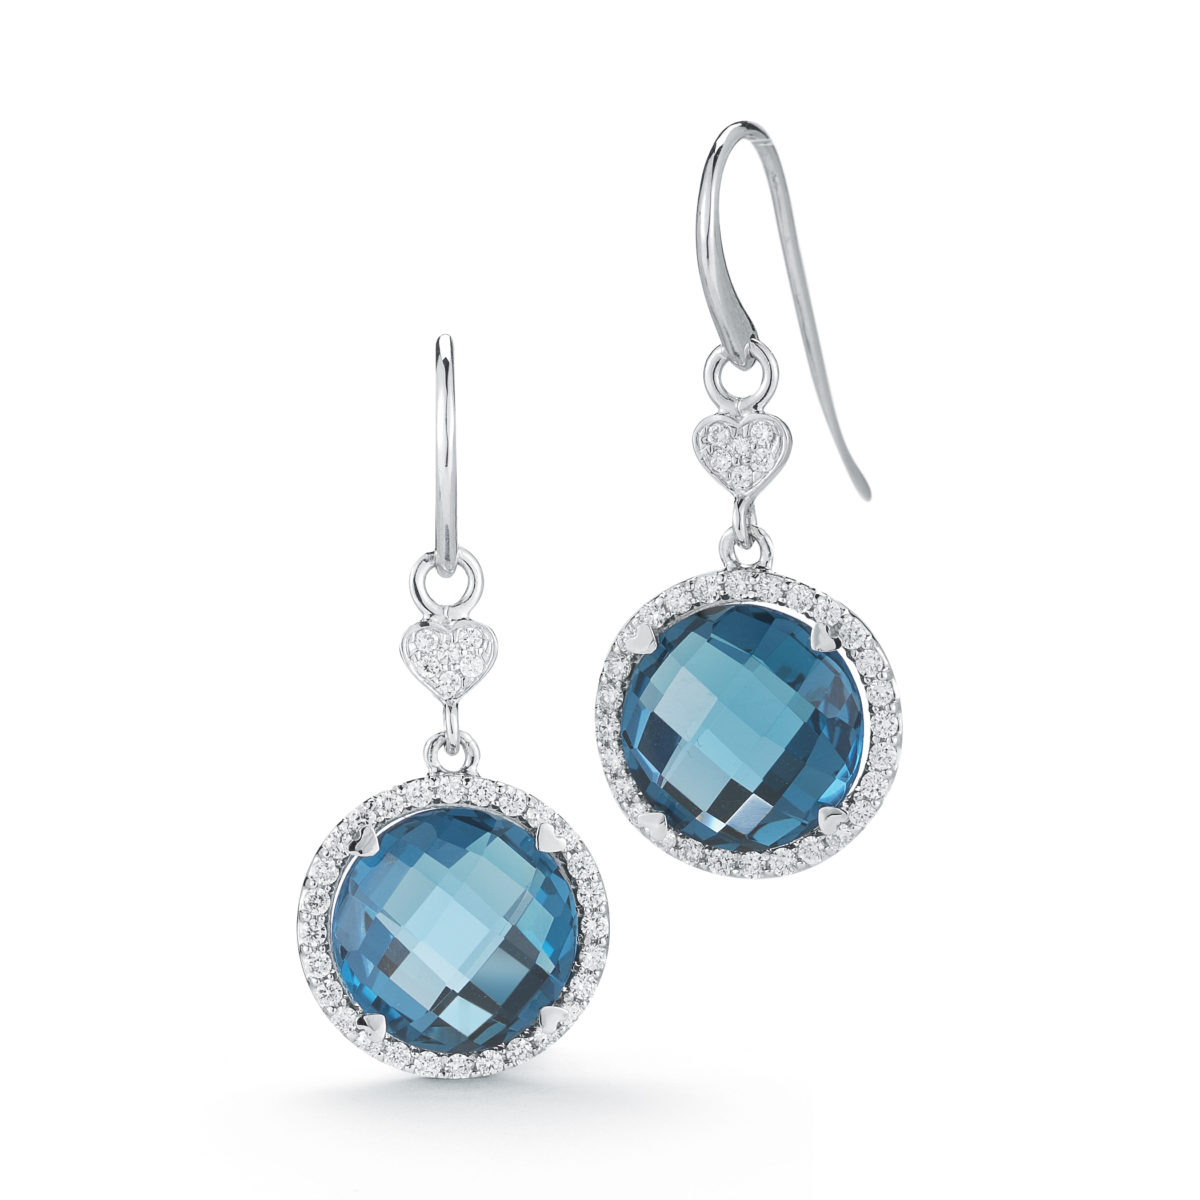 friedman cusion studs cushion jewelry s blue jewelers petite product earrings topaz jewellery oratorio